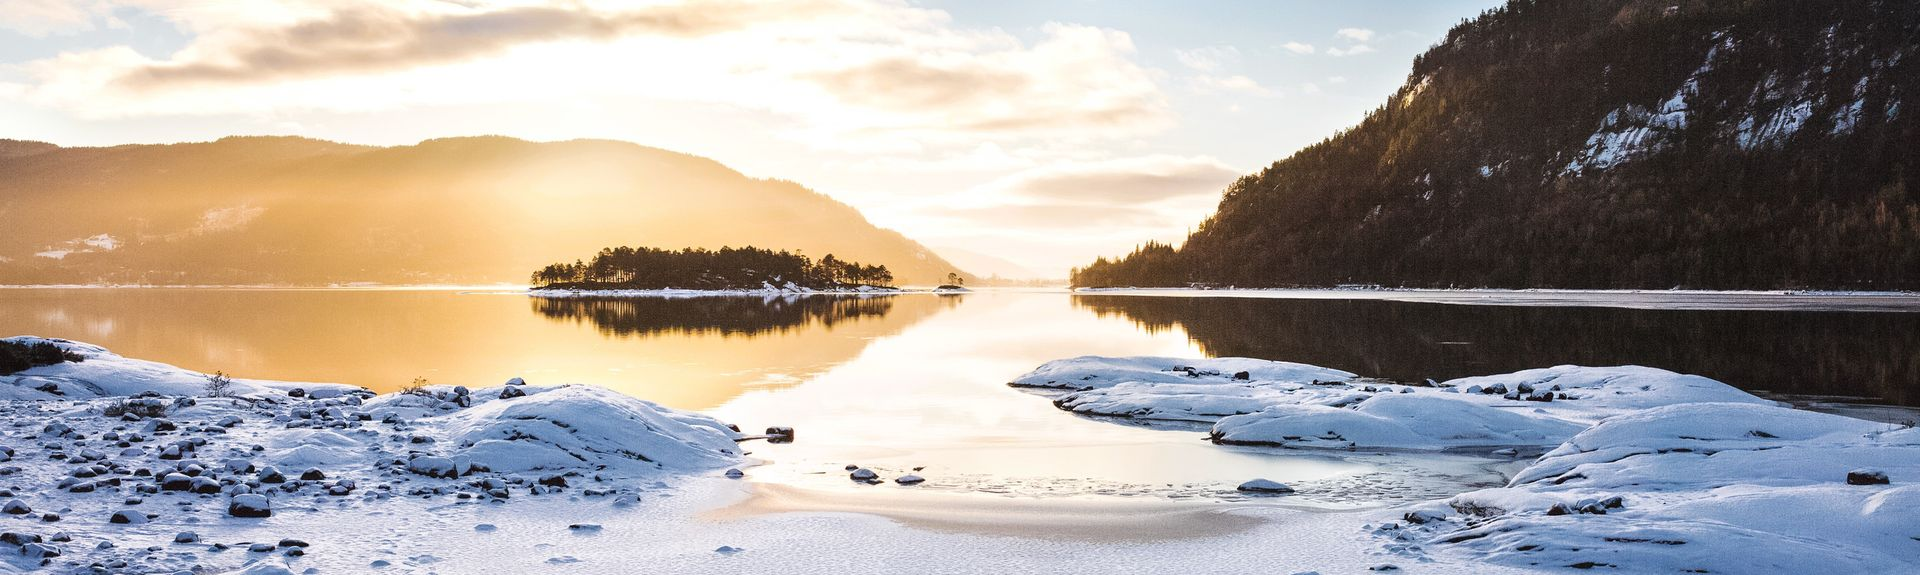 Aseral, Agder, Norway